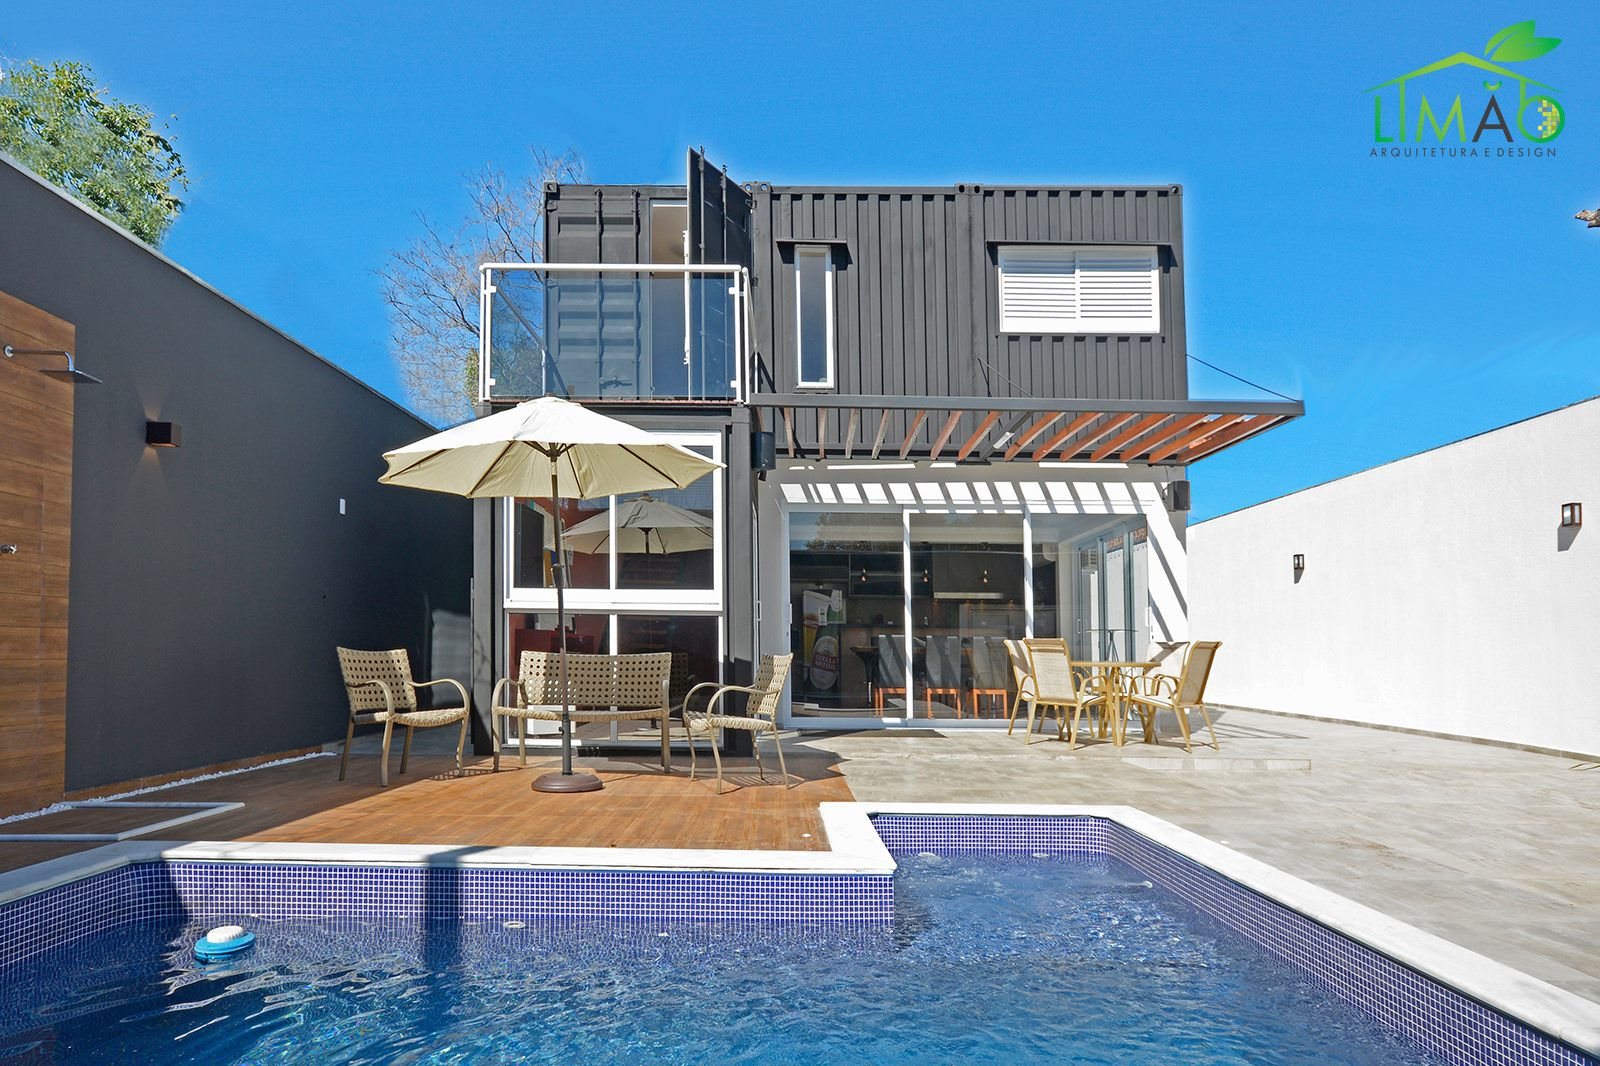 Cool Valley Container House from Brazil 21